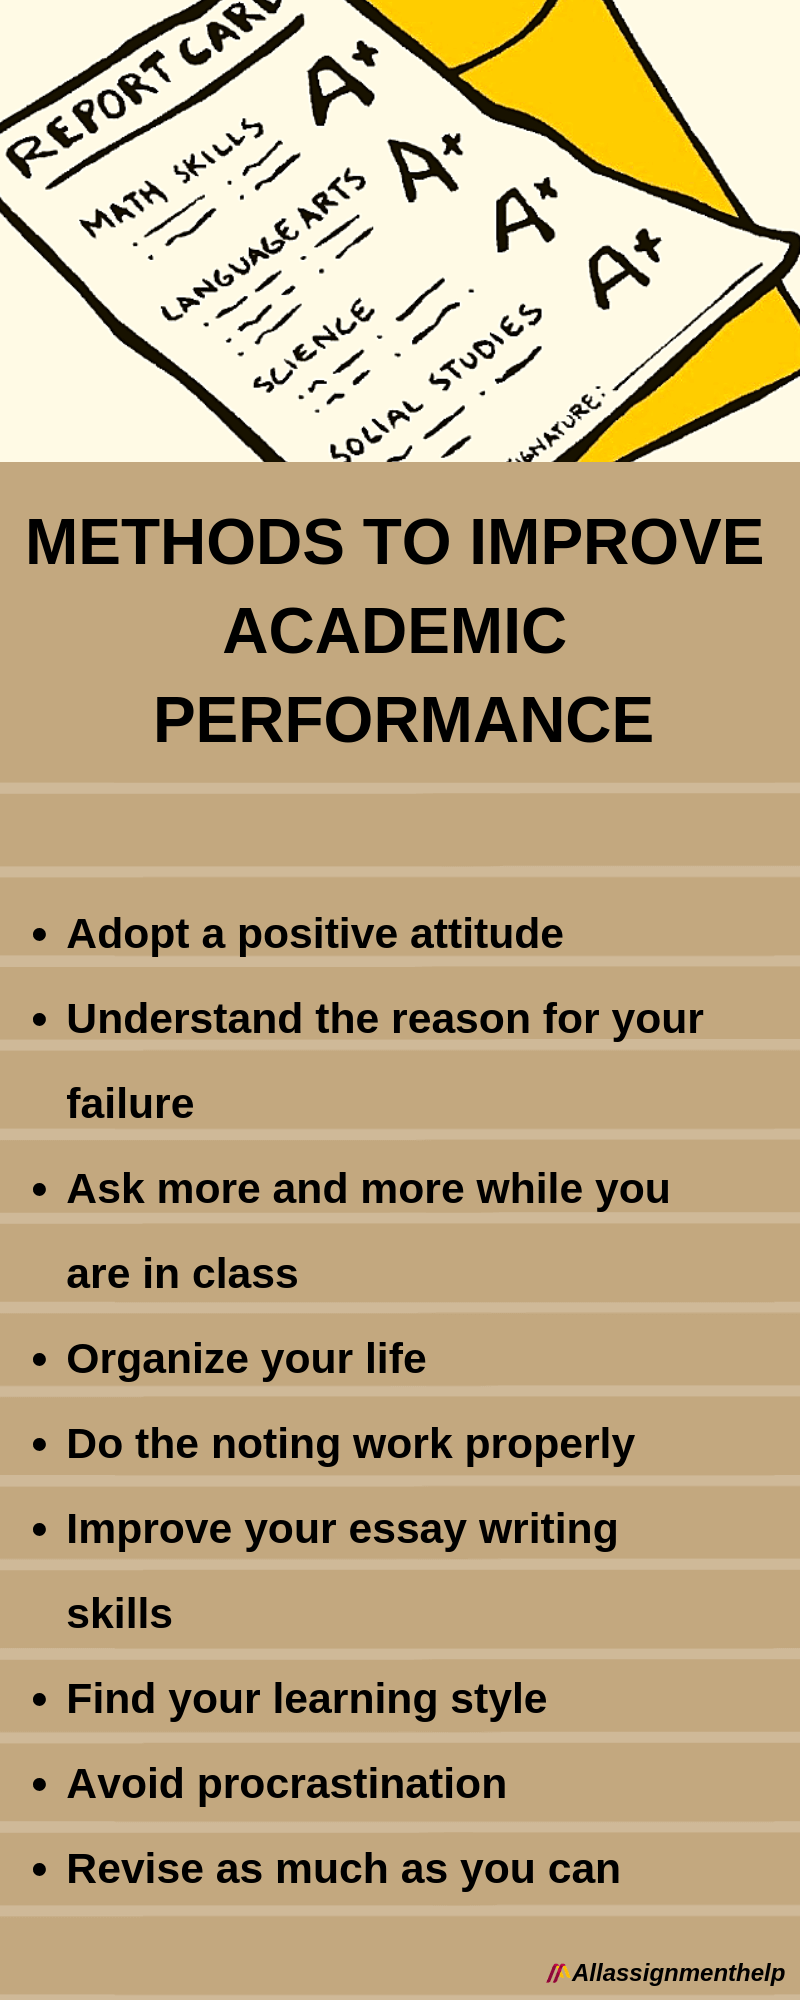 Methods to improve academic performance